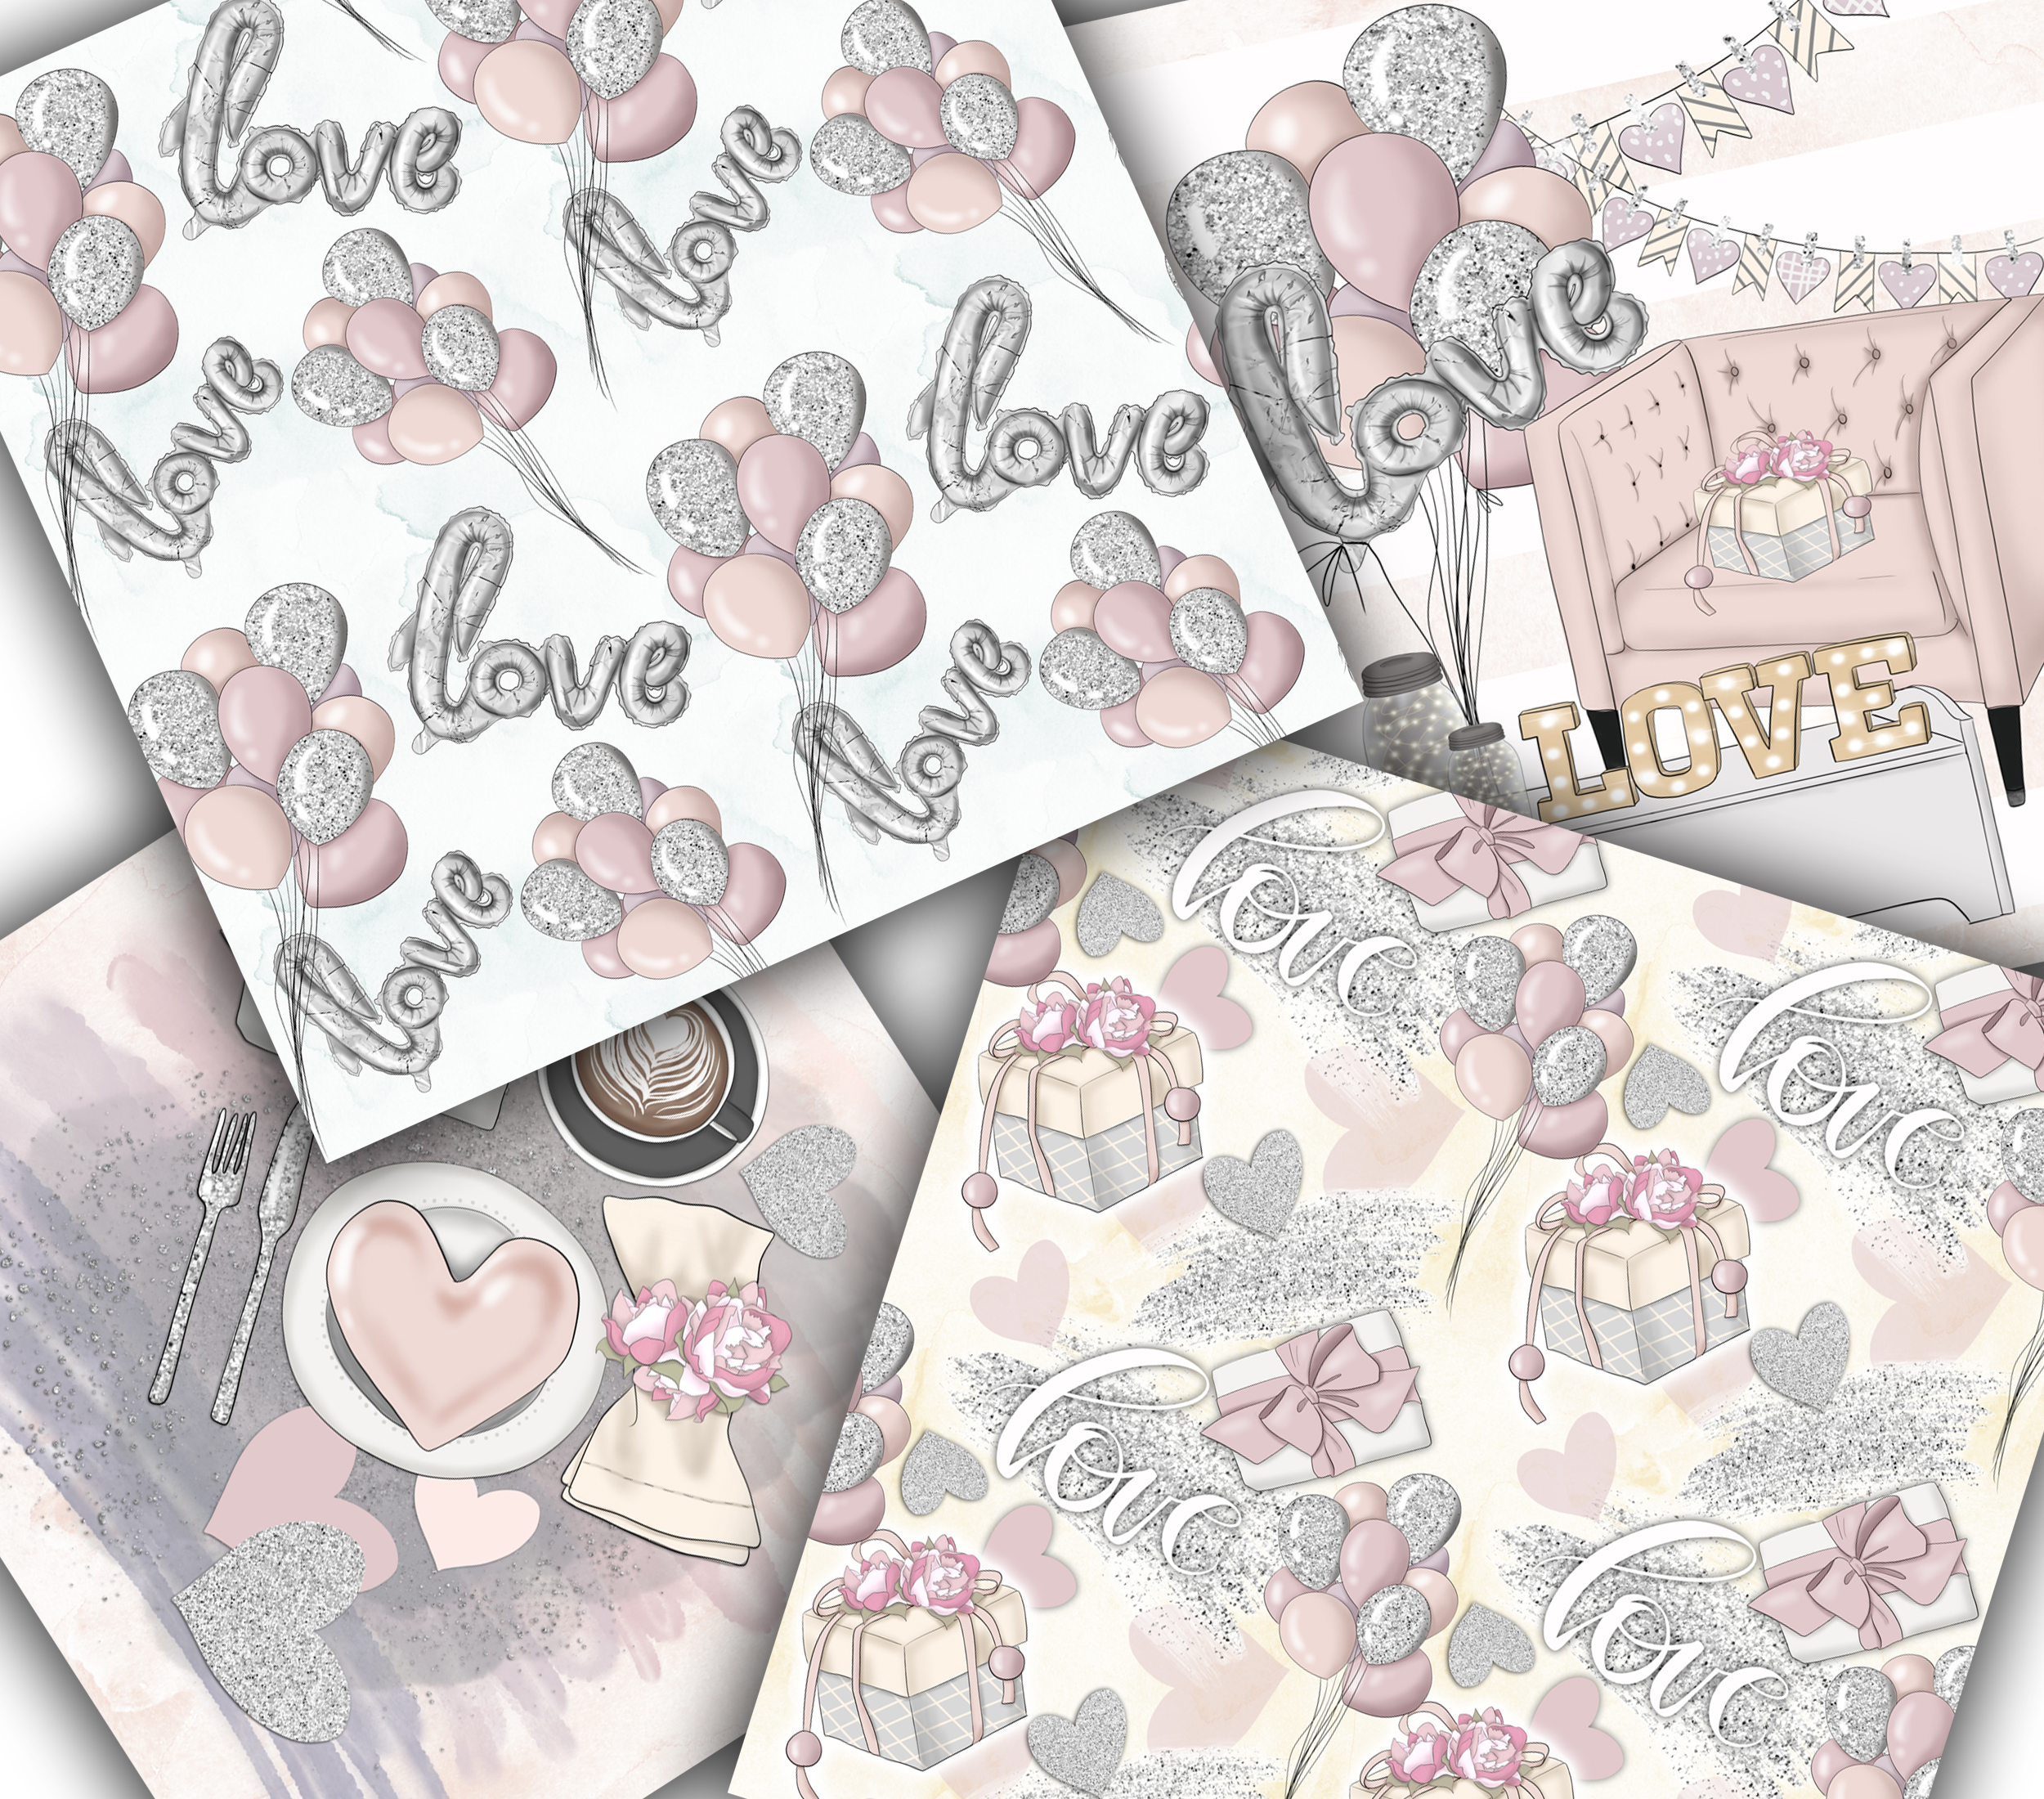 All You Need Is Love Graphic Design KIt example image 10